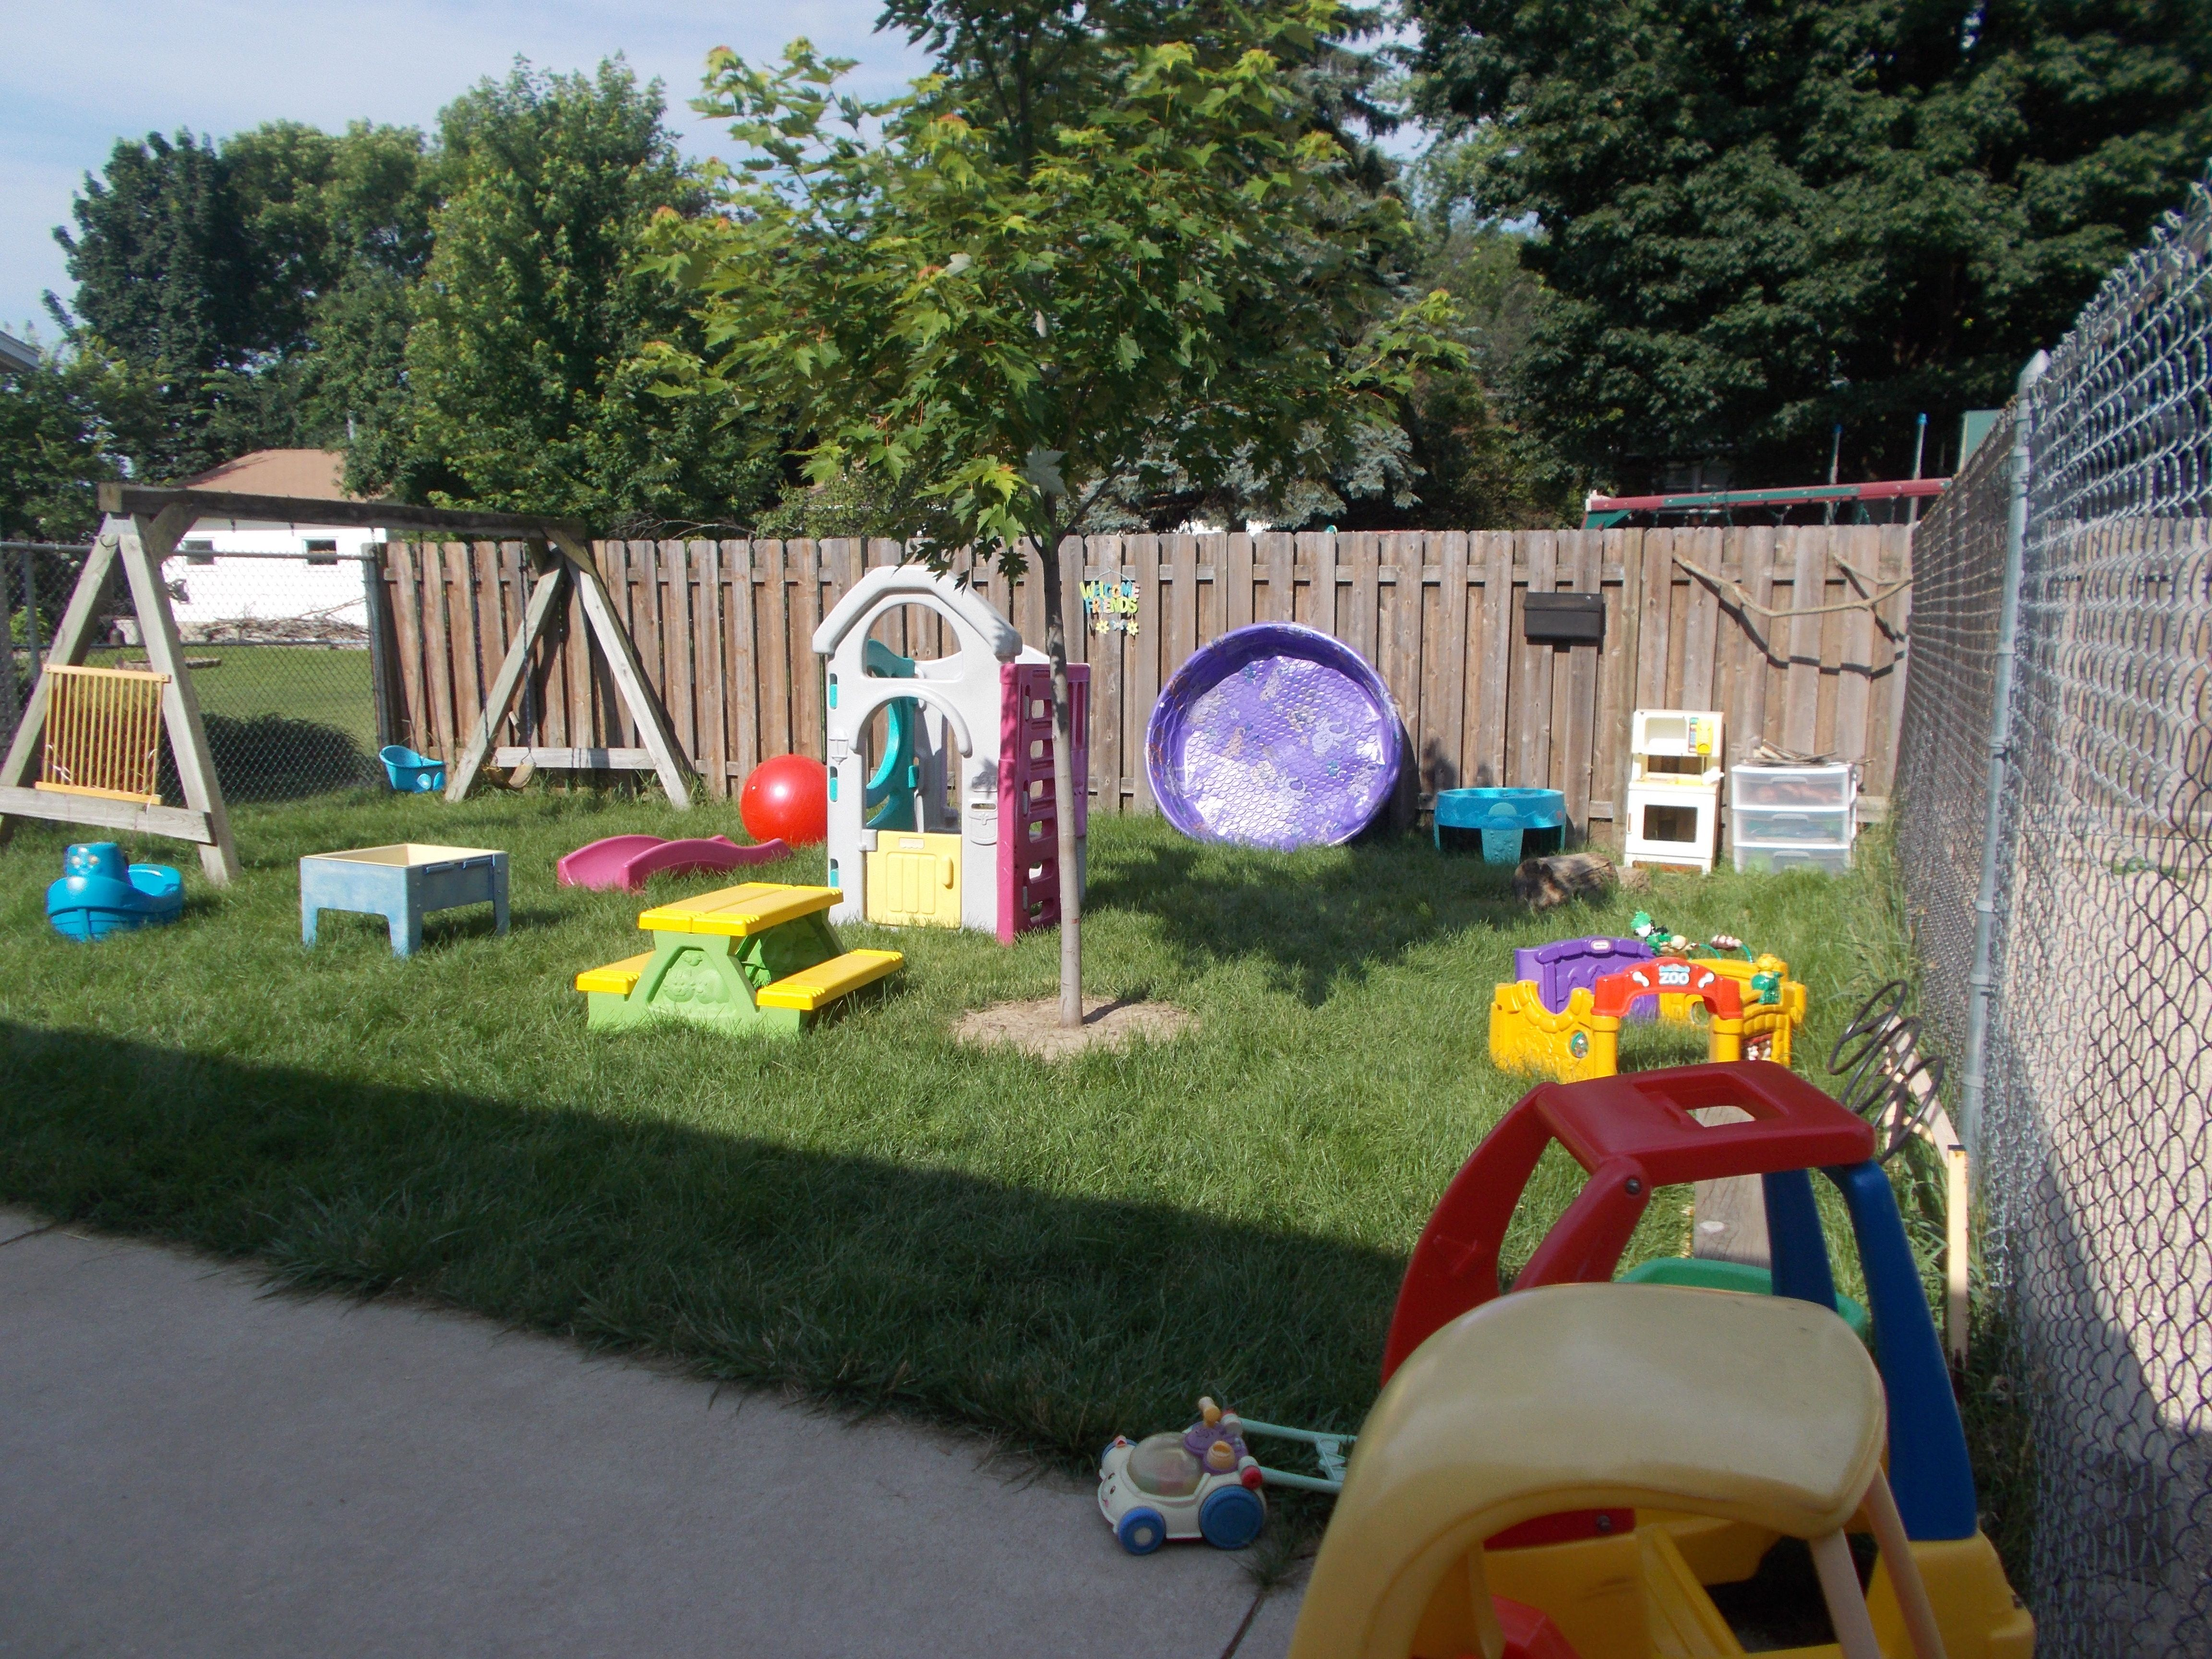 The toddler playground is set up with many centers to ac odate